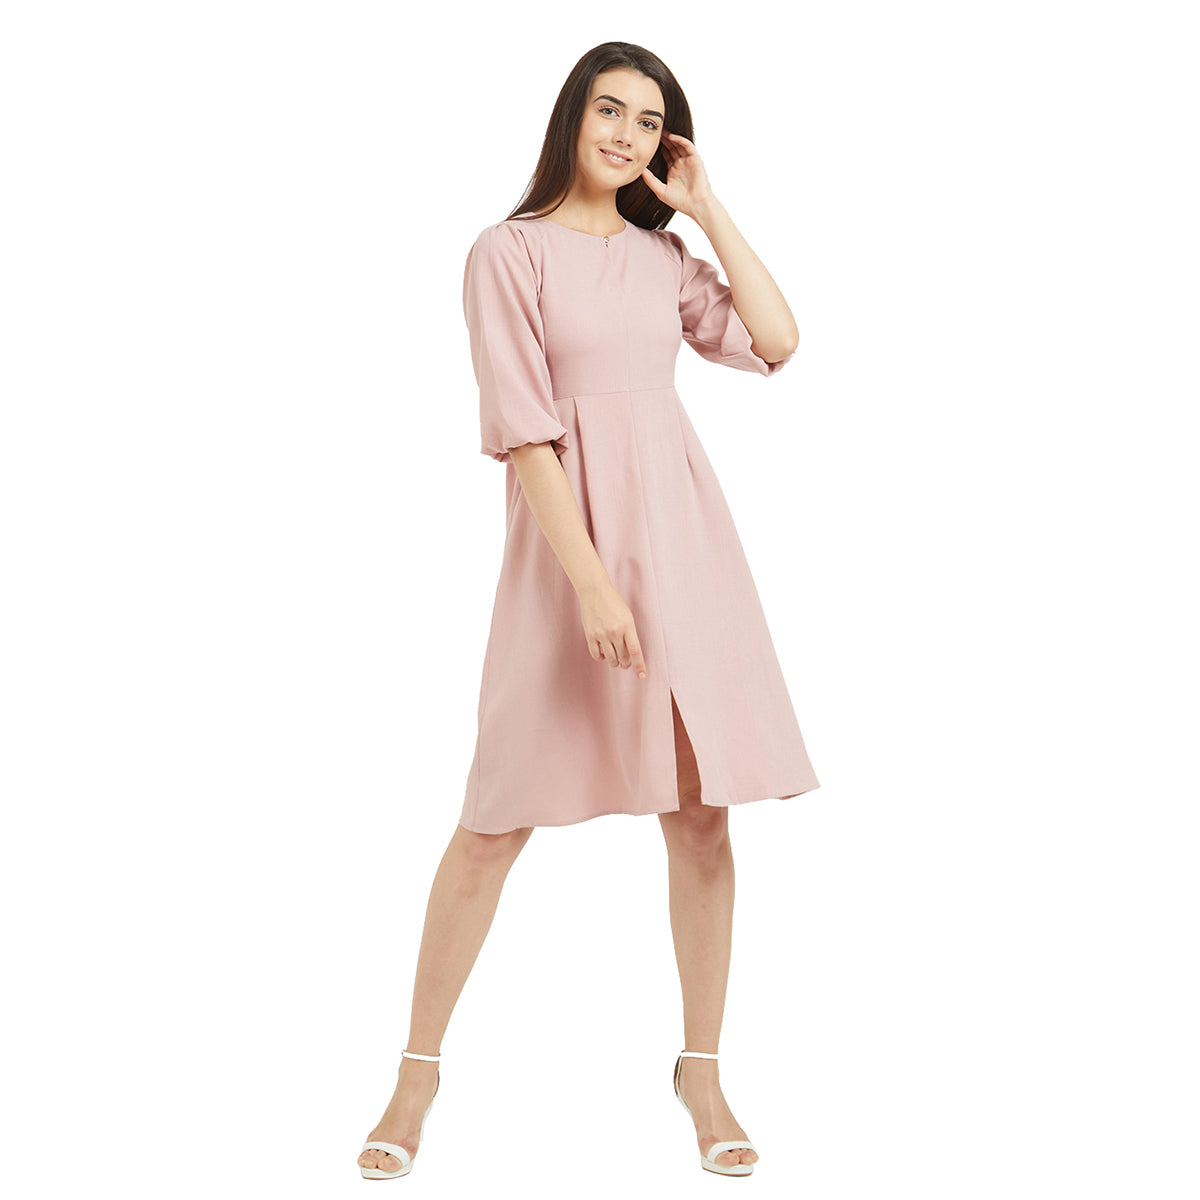 4f162bd19a Home Products Blush Solid Knee Length Dress. FALSE